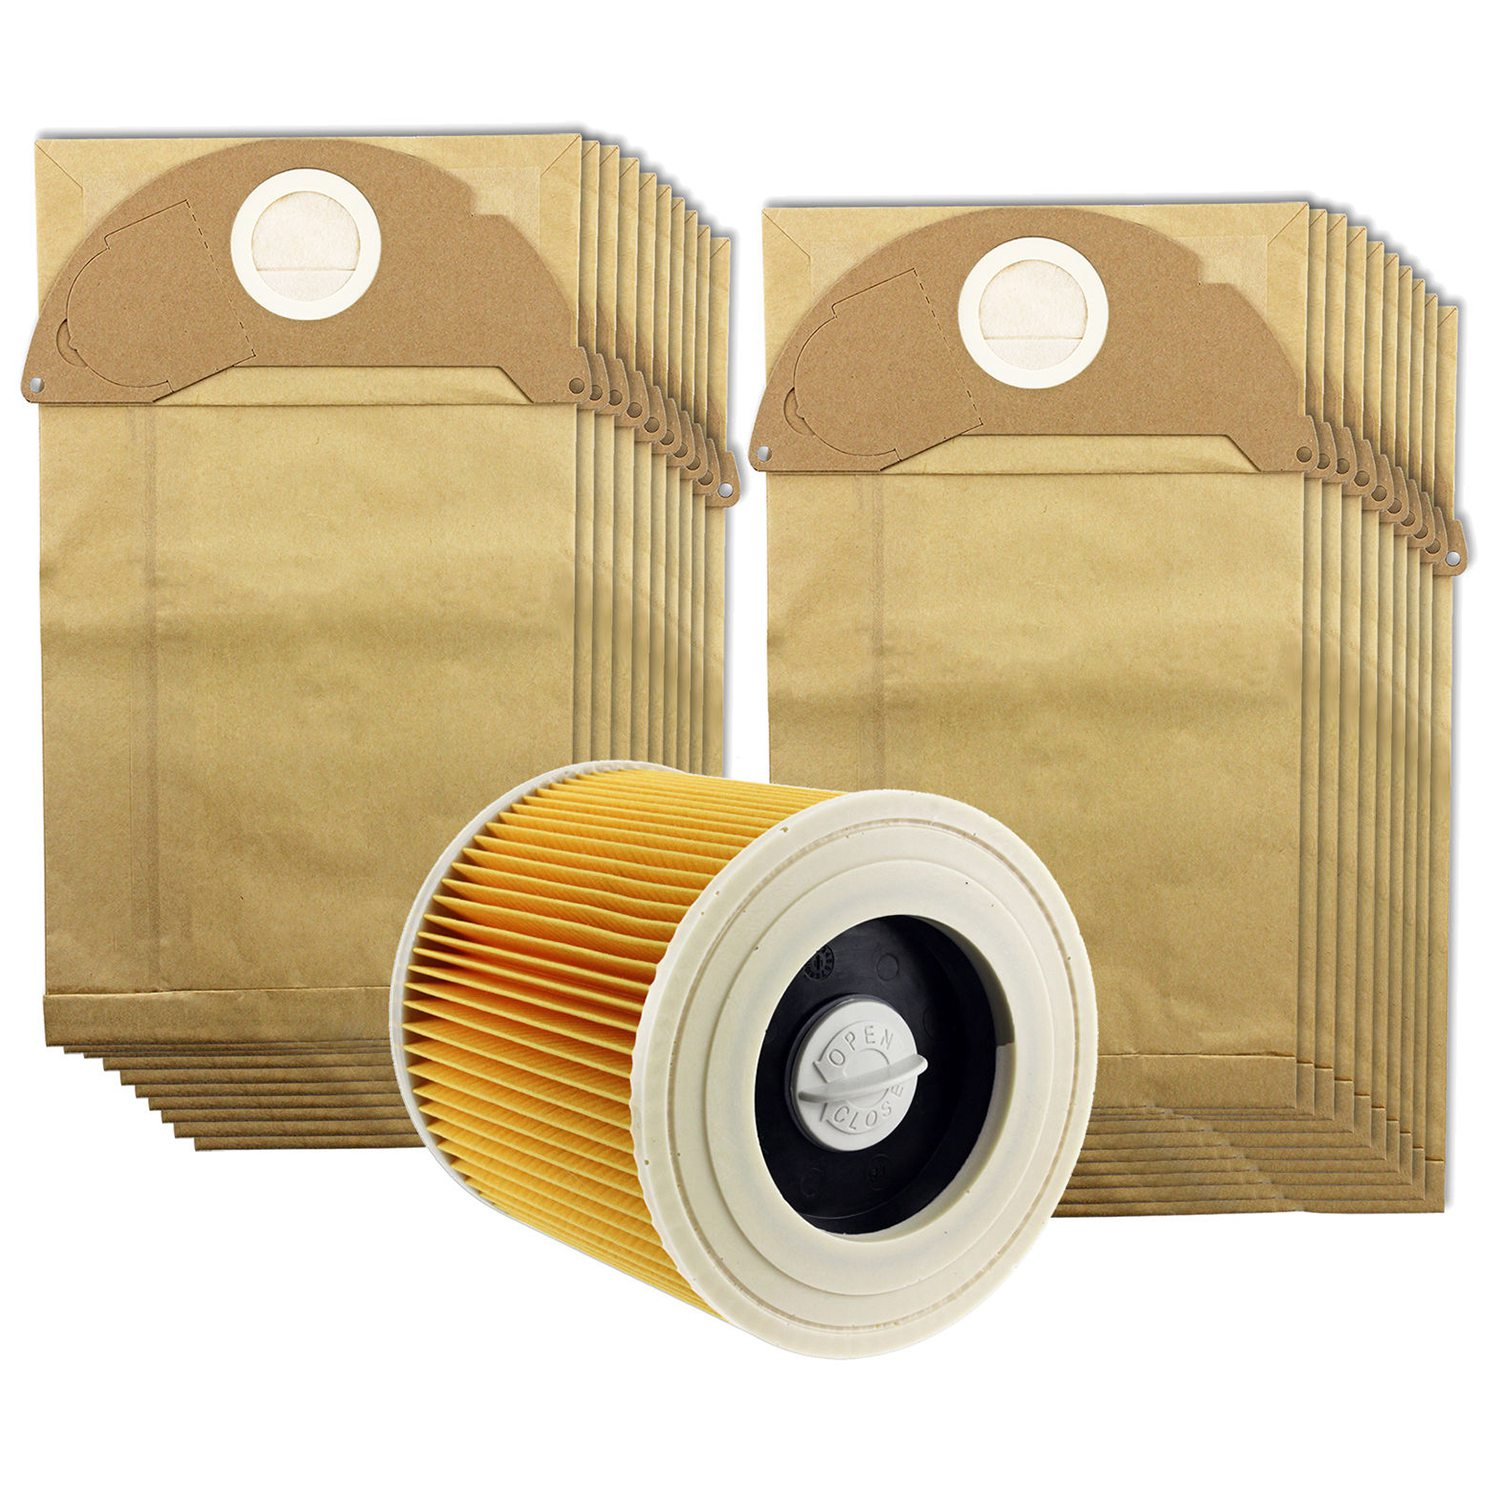 Vacuum Cleaner Filter replacement air dust filter bag 20 Dust Bags for Karcher Cartridge HEPA Filter For Karcher Wet&Dry WD2Vacuum Cleaner Filter replacement air dust filter bag 20 Dust Bags for Karcher Cartridge HEPA Filter For Karcher Wet&Dry WD2